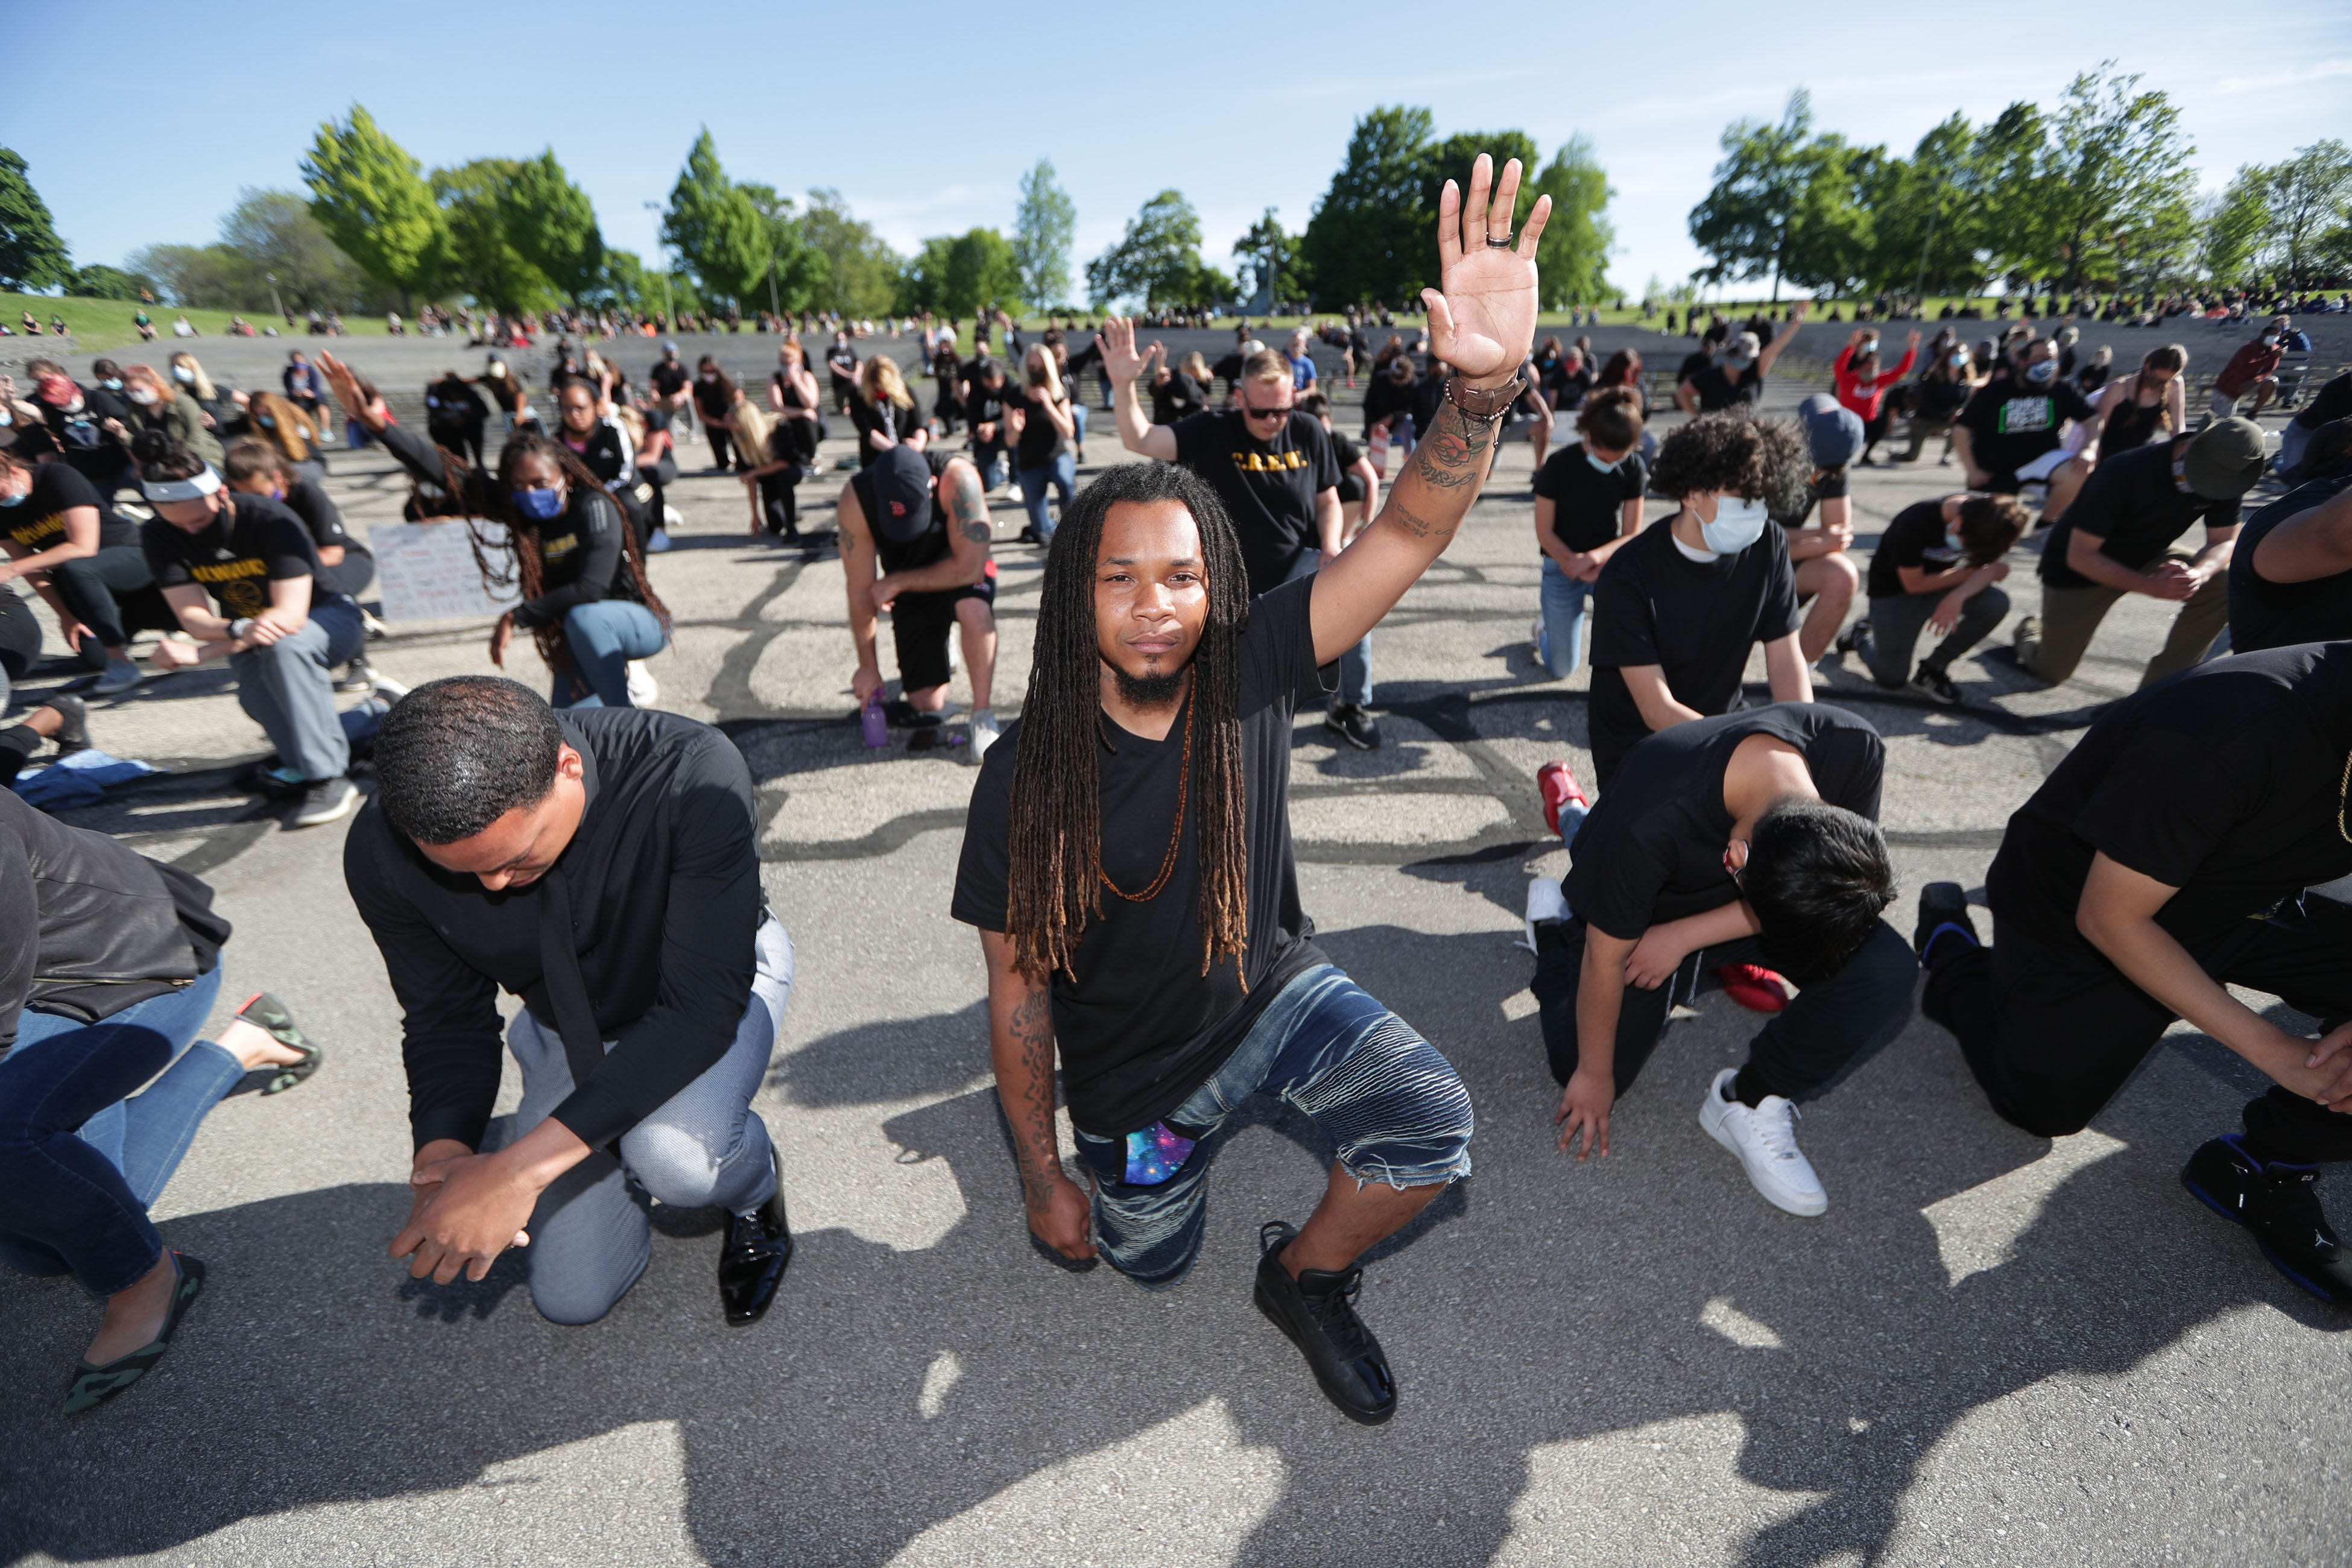 Terry Thompson, center, with Salt and Light Christian group from Oak Creek Assembly of God church, is joined by others as they take a knee, the opposite knee the Minneapolis officer used in the death of George Floyd, showing support against police brutality during a peaceful prayer protest at Washington Park on Sunday, May 31, 2020.